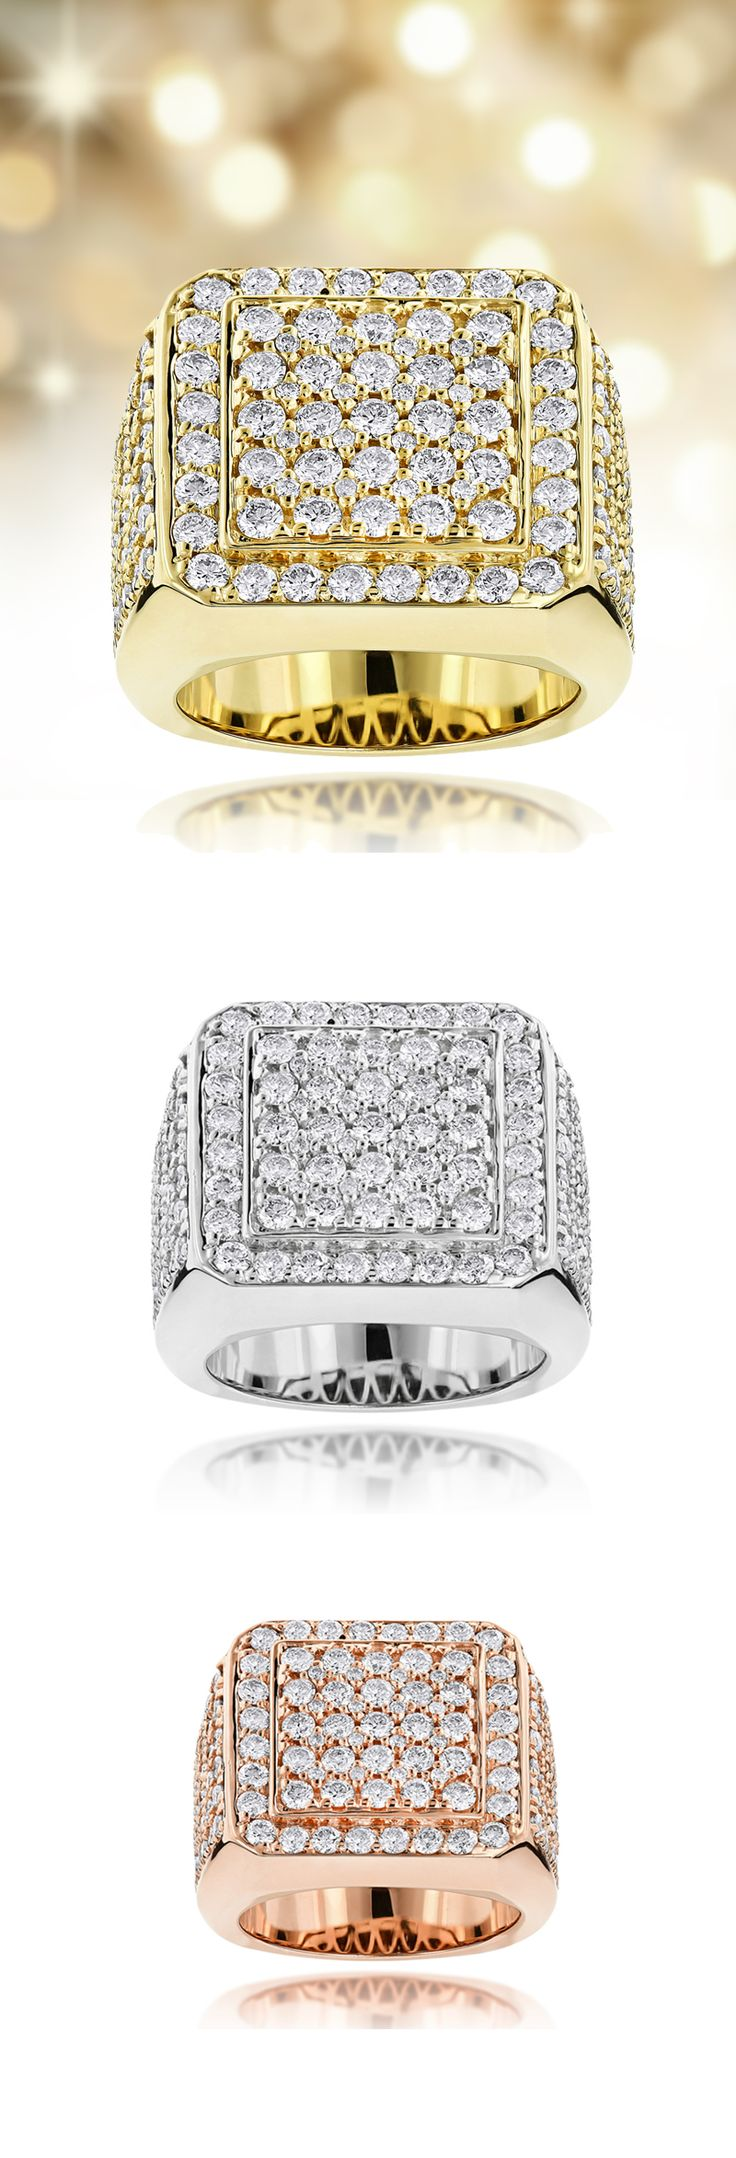 This dazzling 14K Gold Mens Designer Diamond Rings Collection item showcases 6.02 carats of exquisite round diamonds, each masterfully pave or prong set in a lustrous gold frame. Featuring a simple but absolutely luxurious design and a highly polished gold finish, this mens diamond ring from our designer diamond jewelry collection is available in 14K or 18k white gold, yellow gold, rose gold or Platinum.